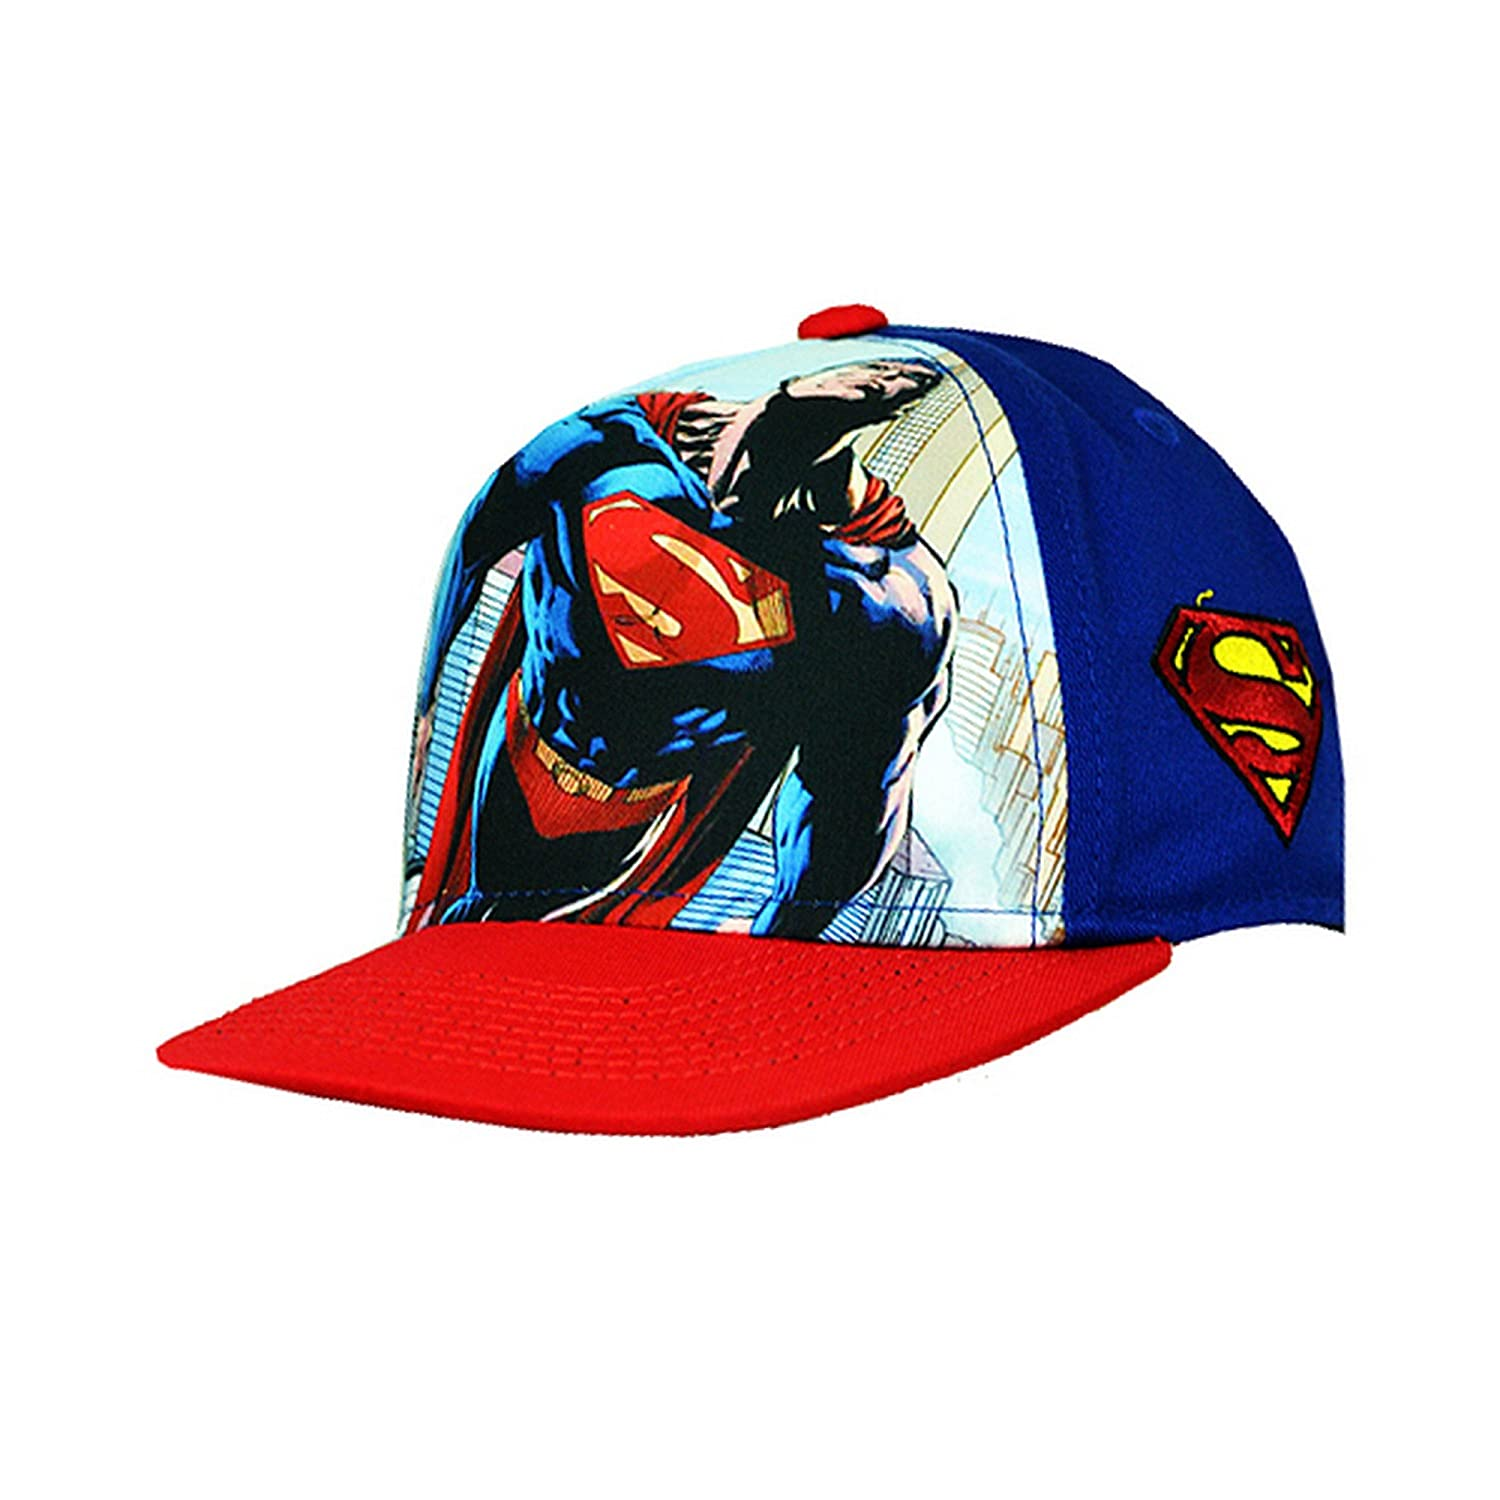 Superman Childrens/Kids Official Snapback Cap UTSG7368_1